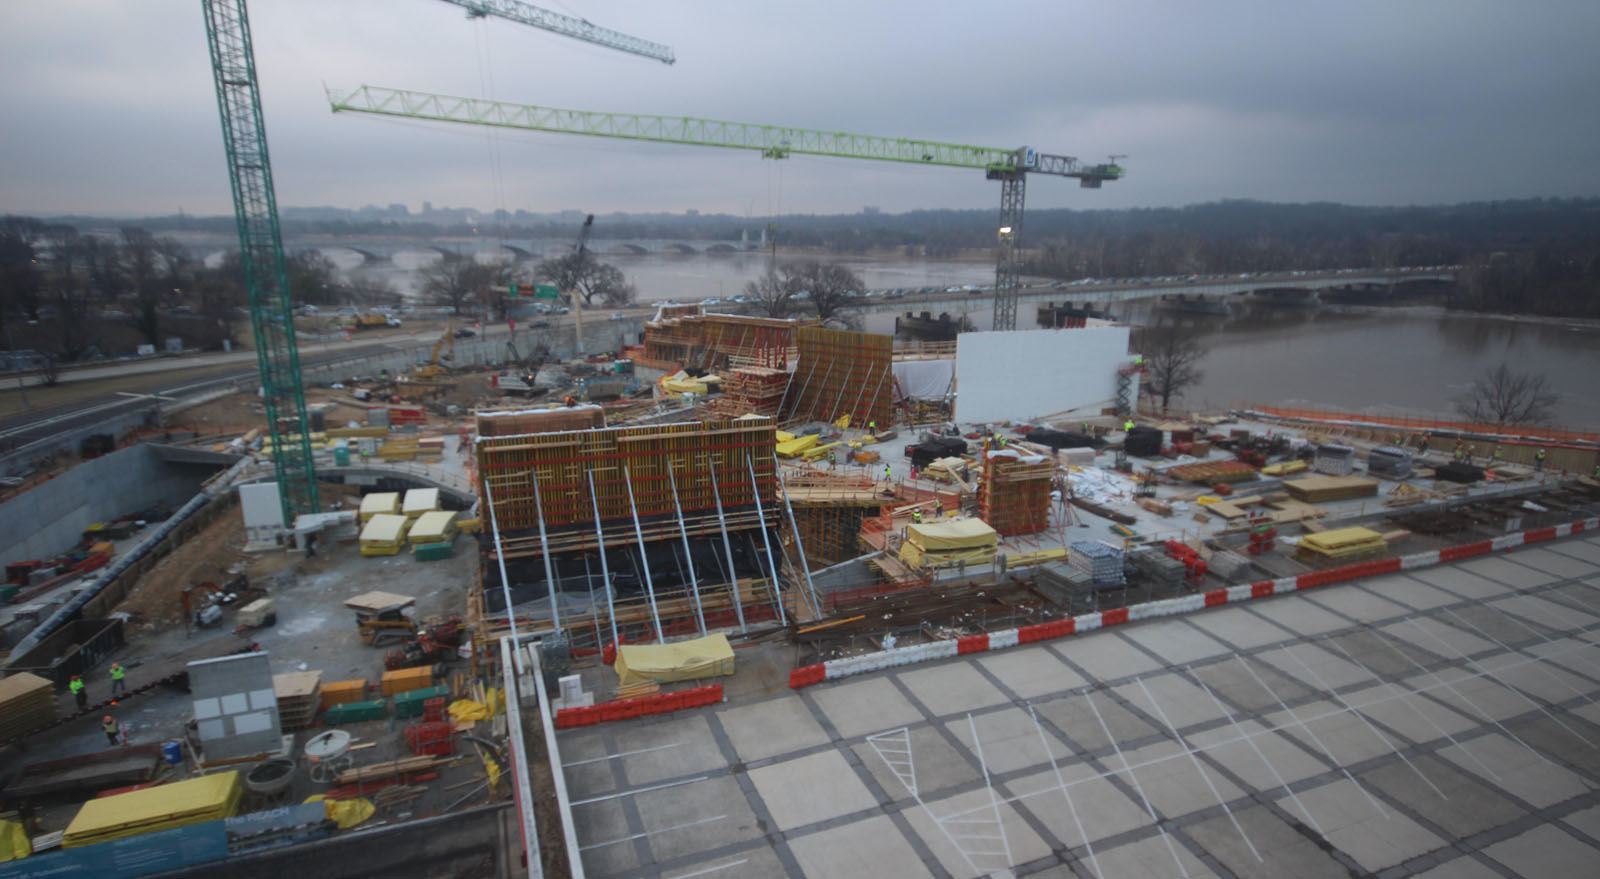 A look at the progress made on the construction of the Kennedy Center's expansion project on Jan. 16, 2018. (Courtesy the Kennedy Center)